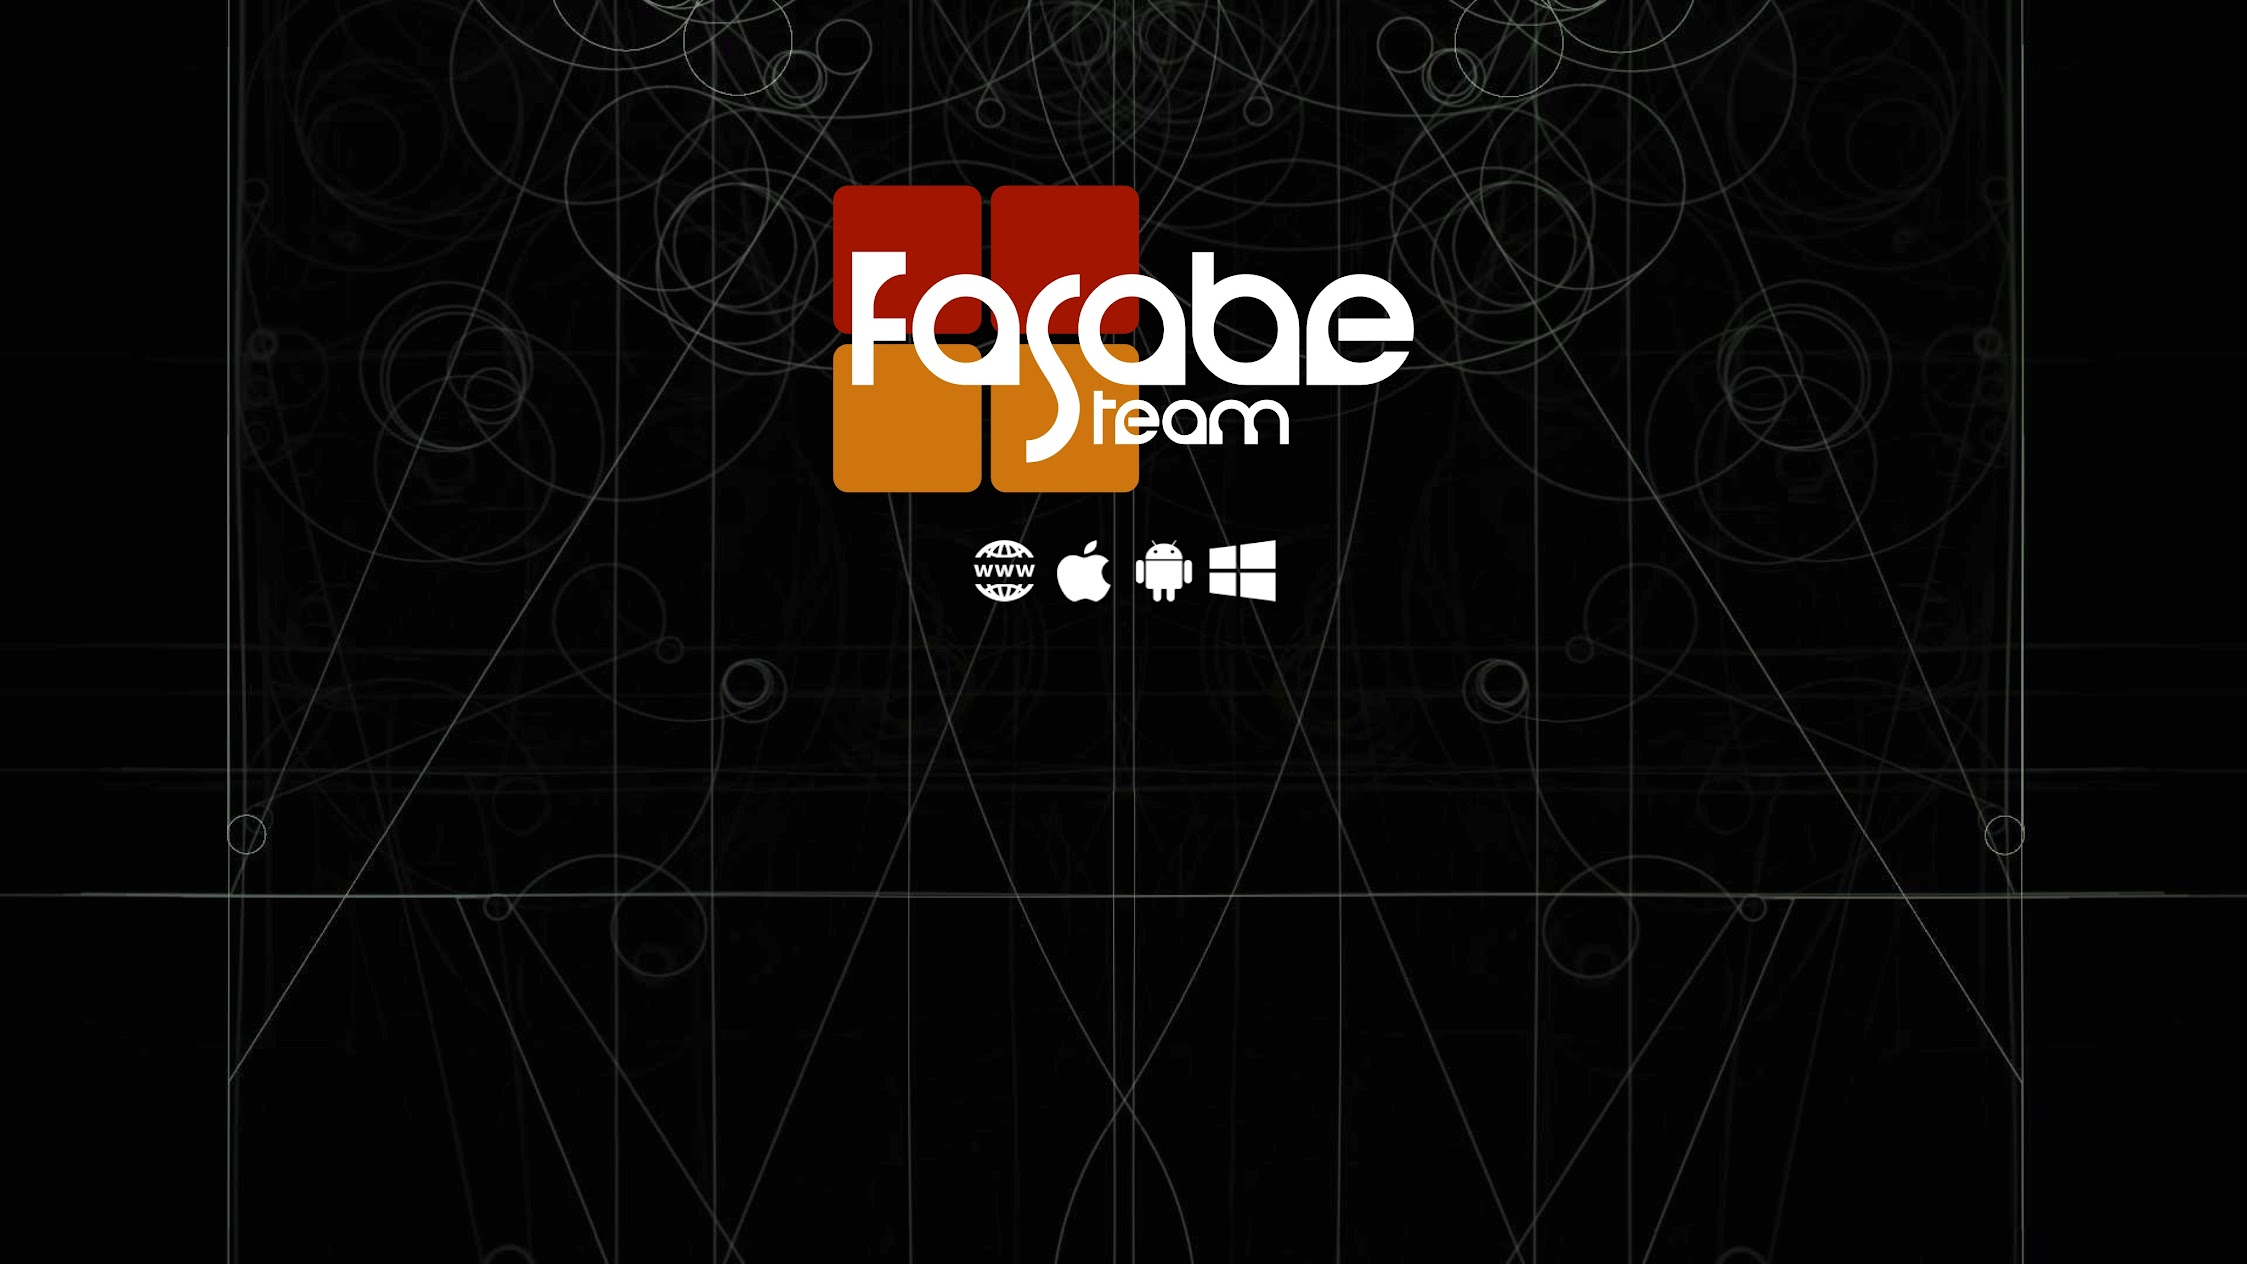 Fasabe-Team